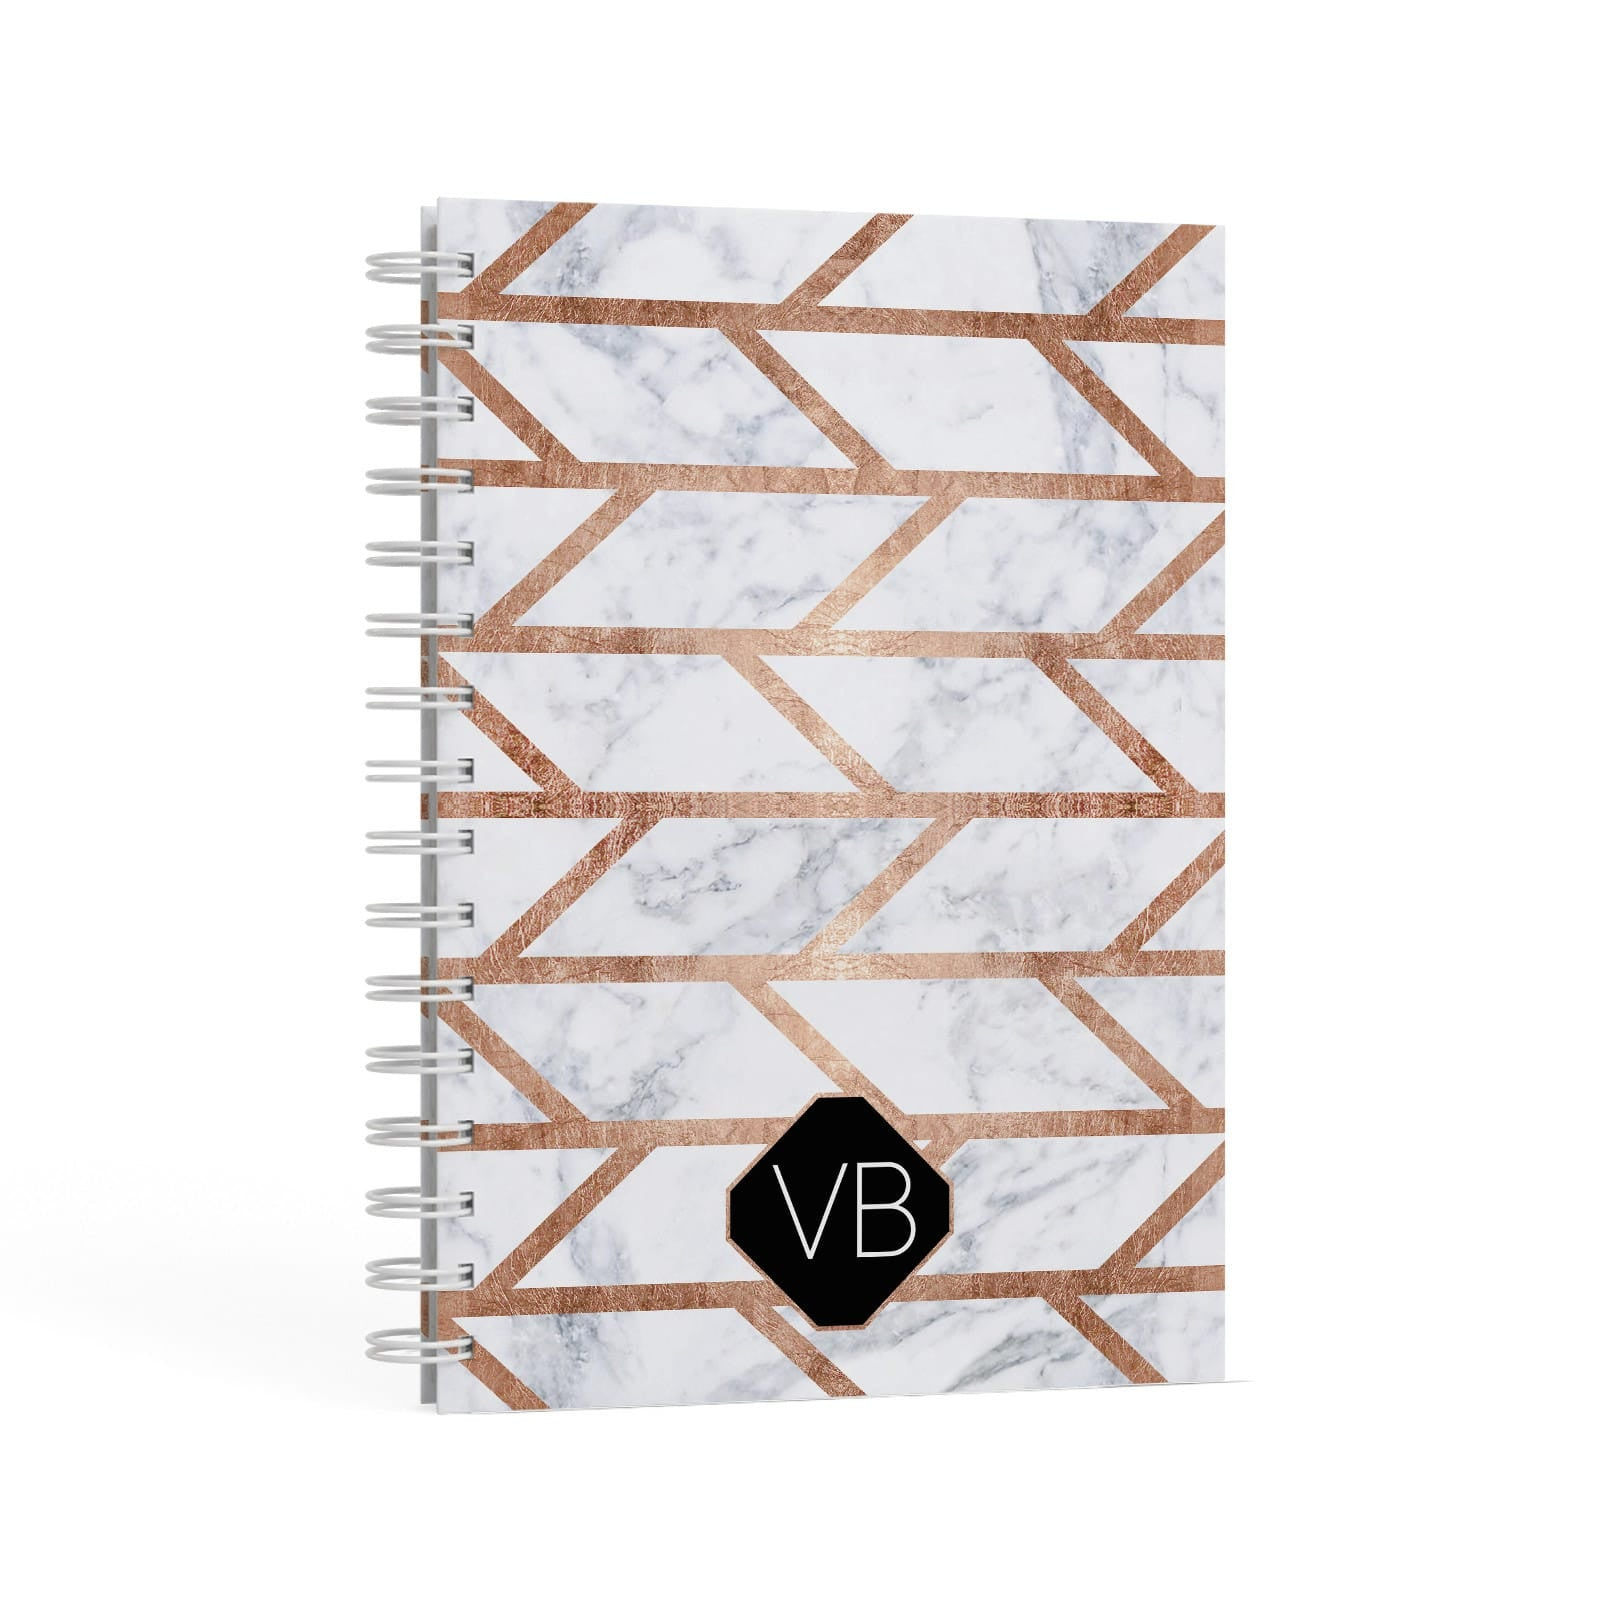 Personalised Rose Gold Faux Marble Initials A5 Hardcover Notebook Second Side View